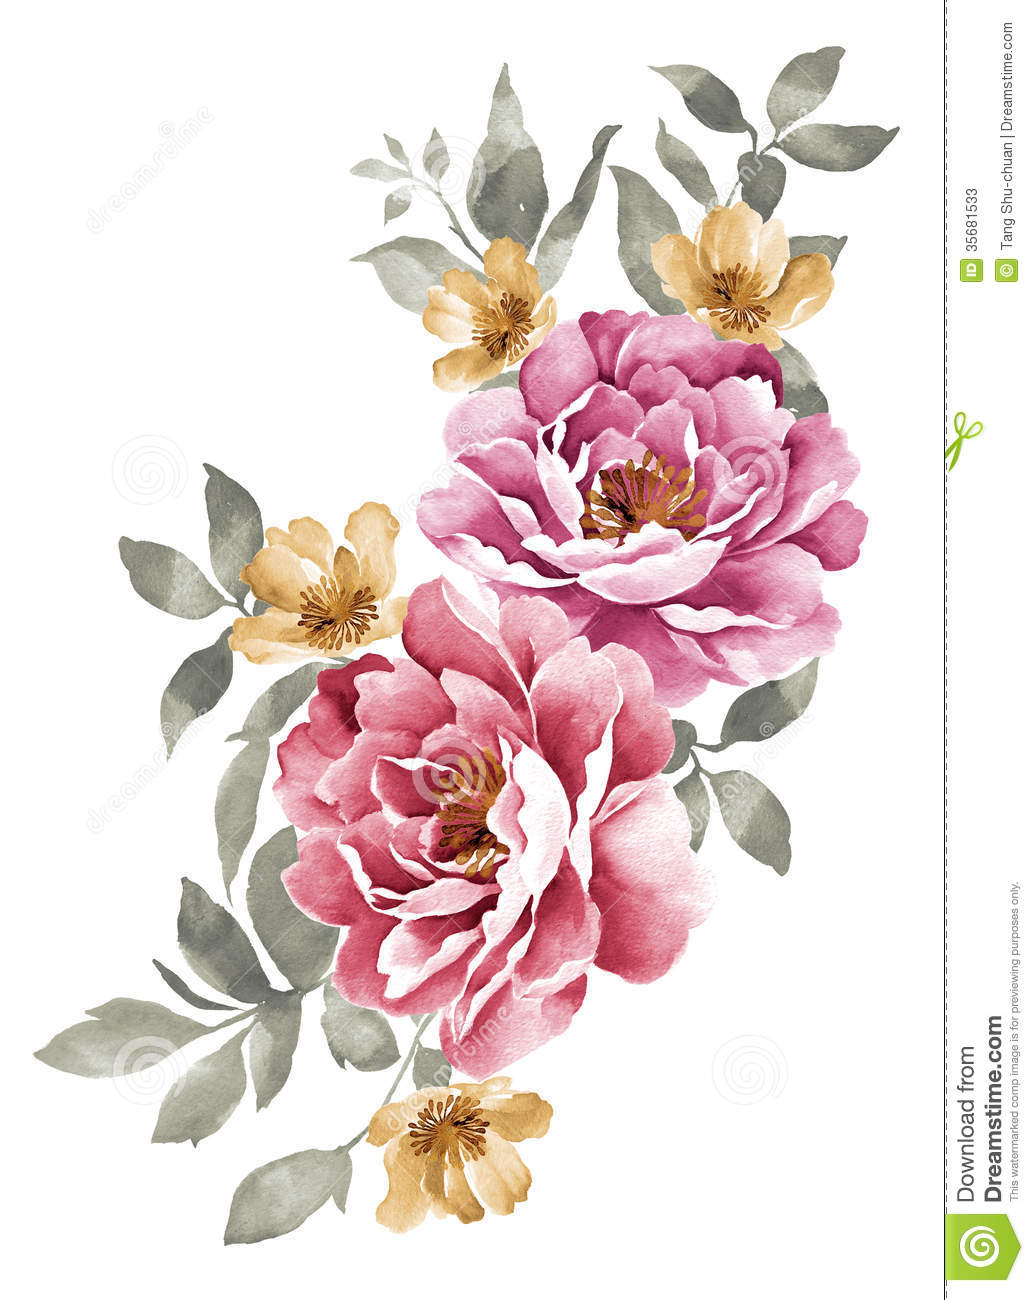 Watercolor Illustration Flower Stock Photos Image 35681533